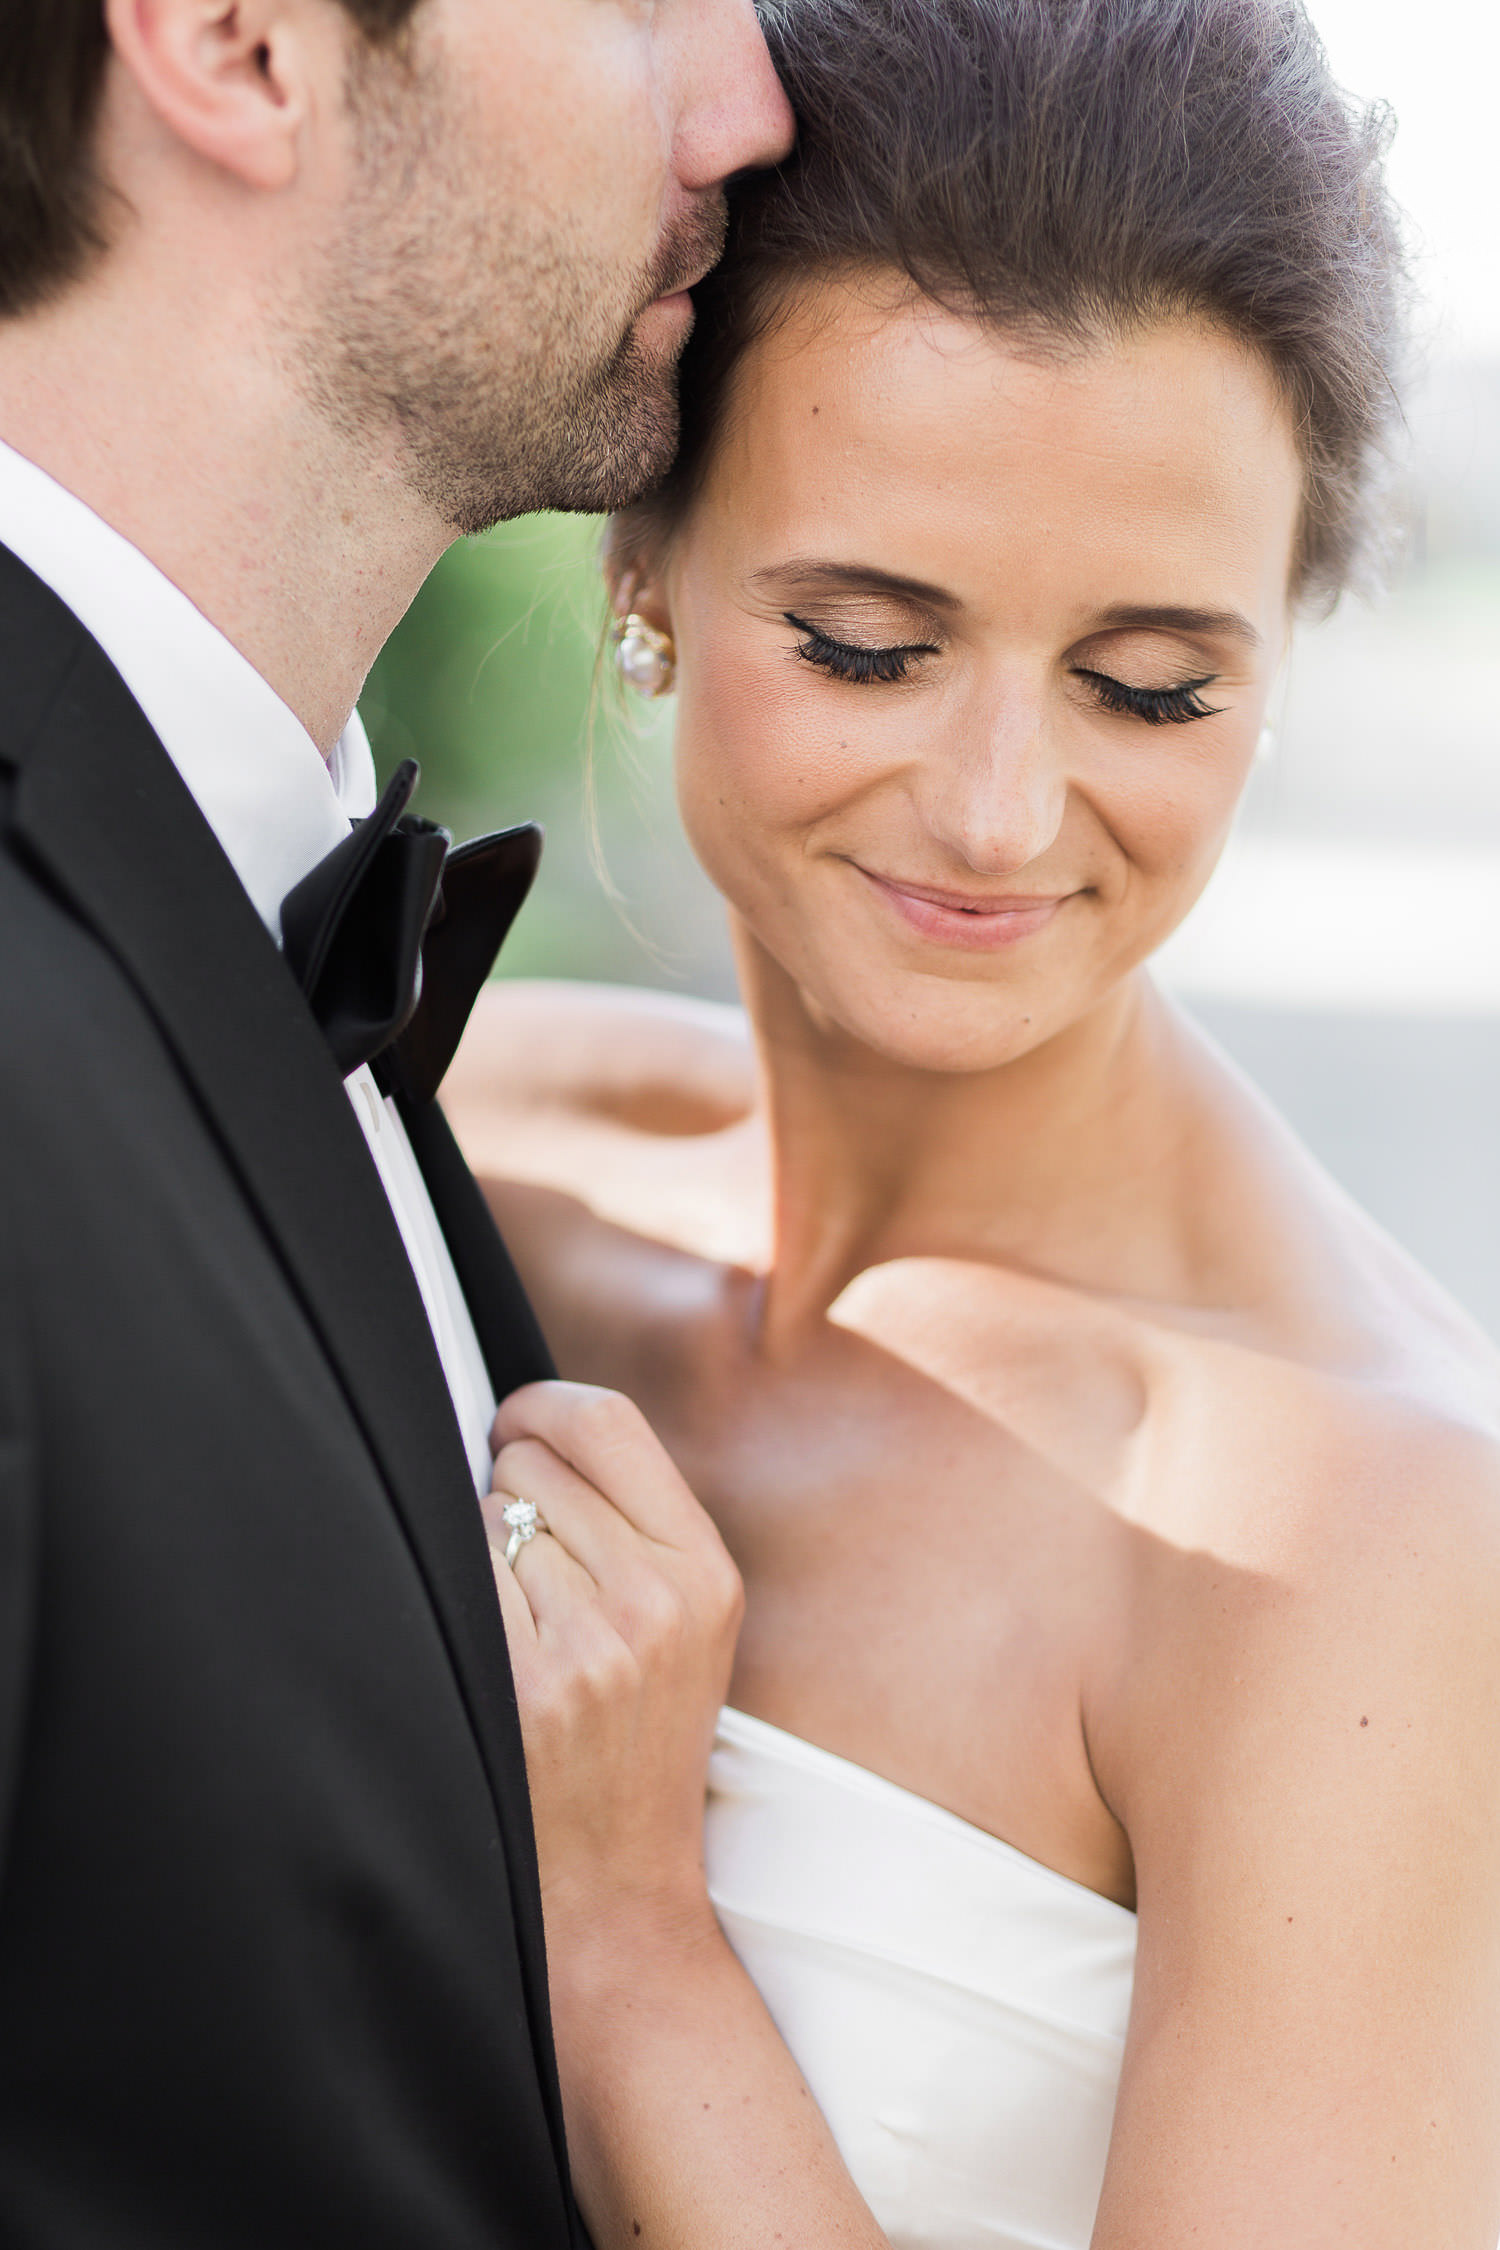 Sweet kiss during couple session | Photo: Camilla Anchisi